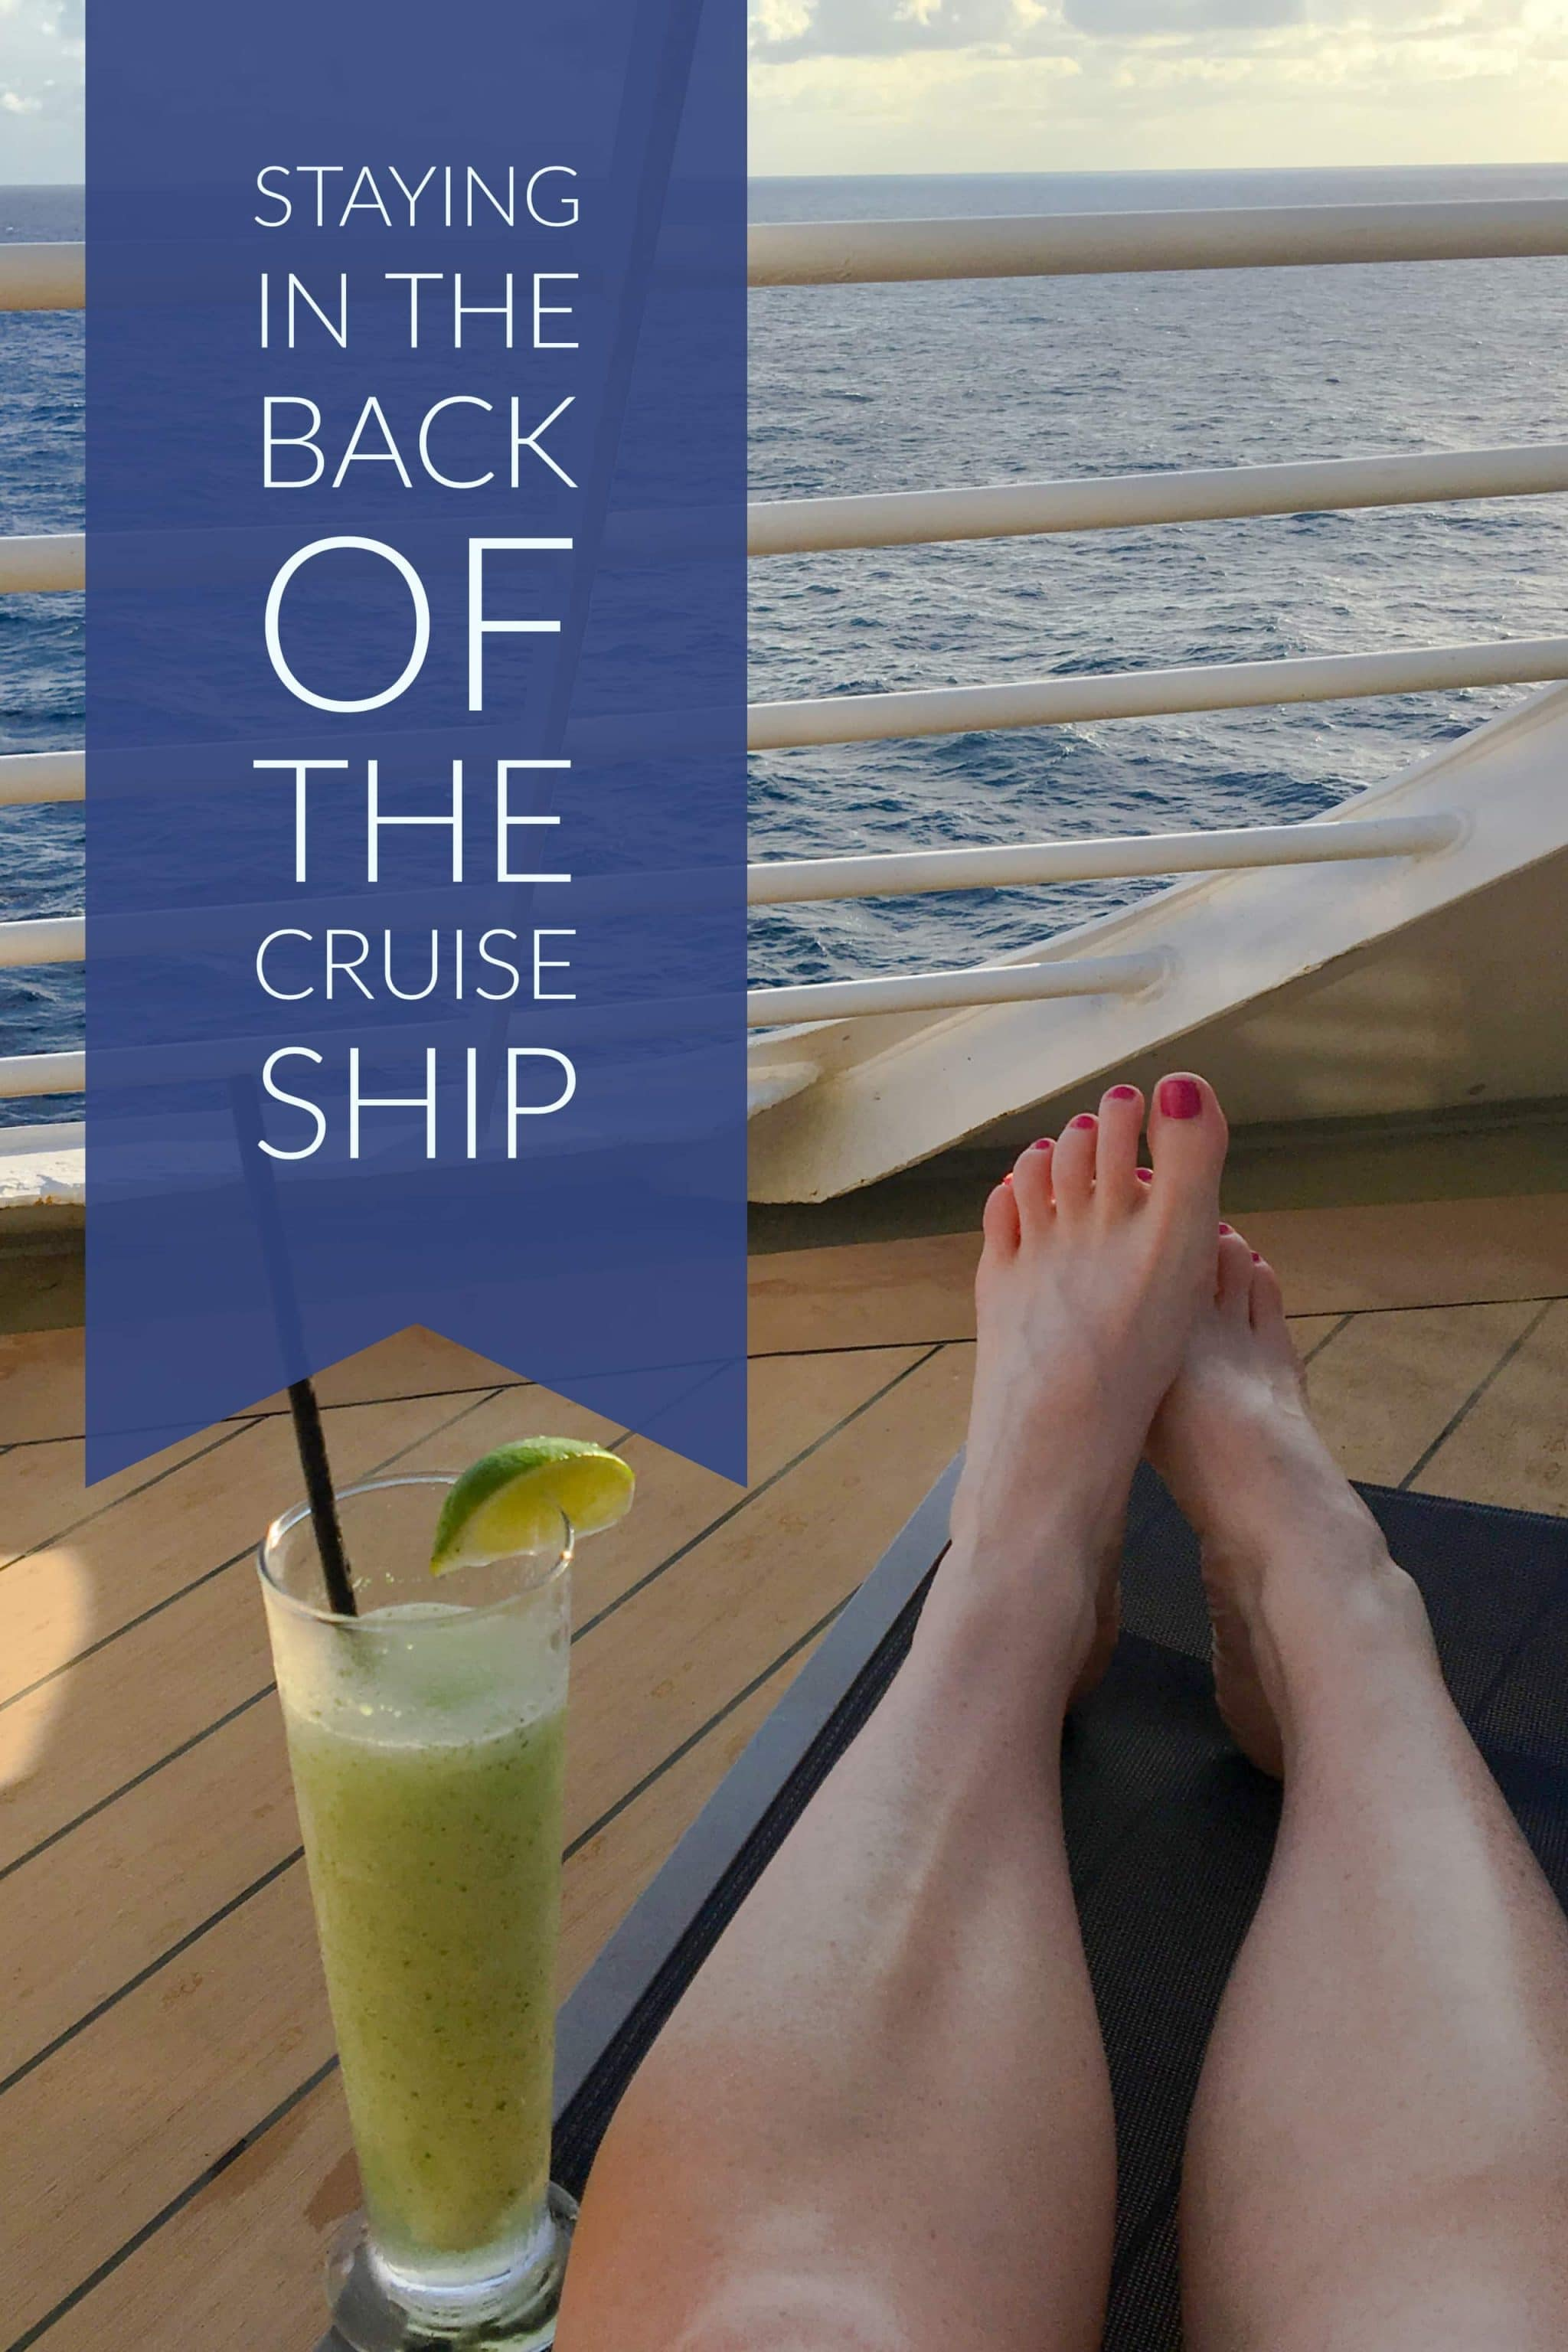 The pros and cons of staying in an aft cabin (the back of the boat) on the Adventure of the Seas, a Royal Caribbean cruise ship.